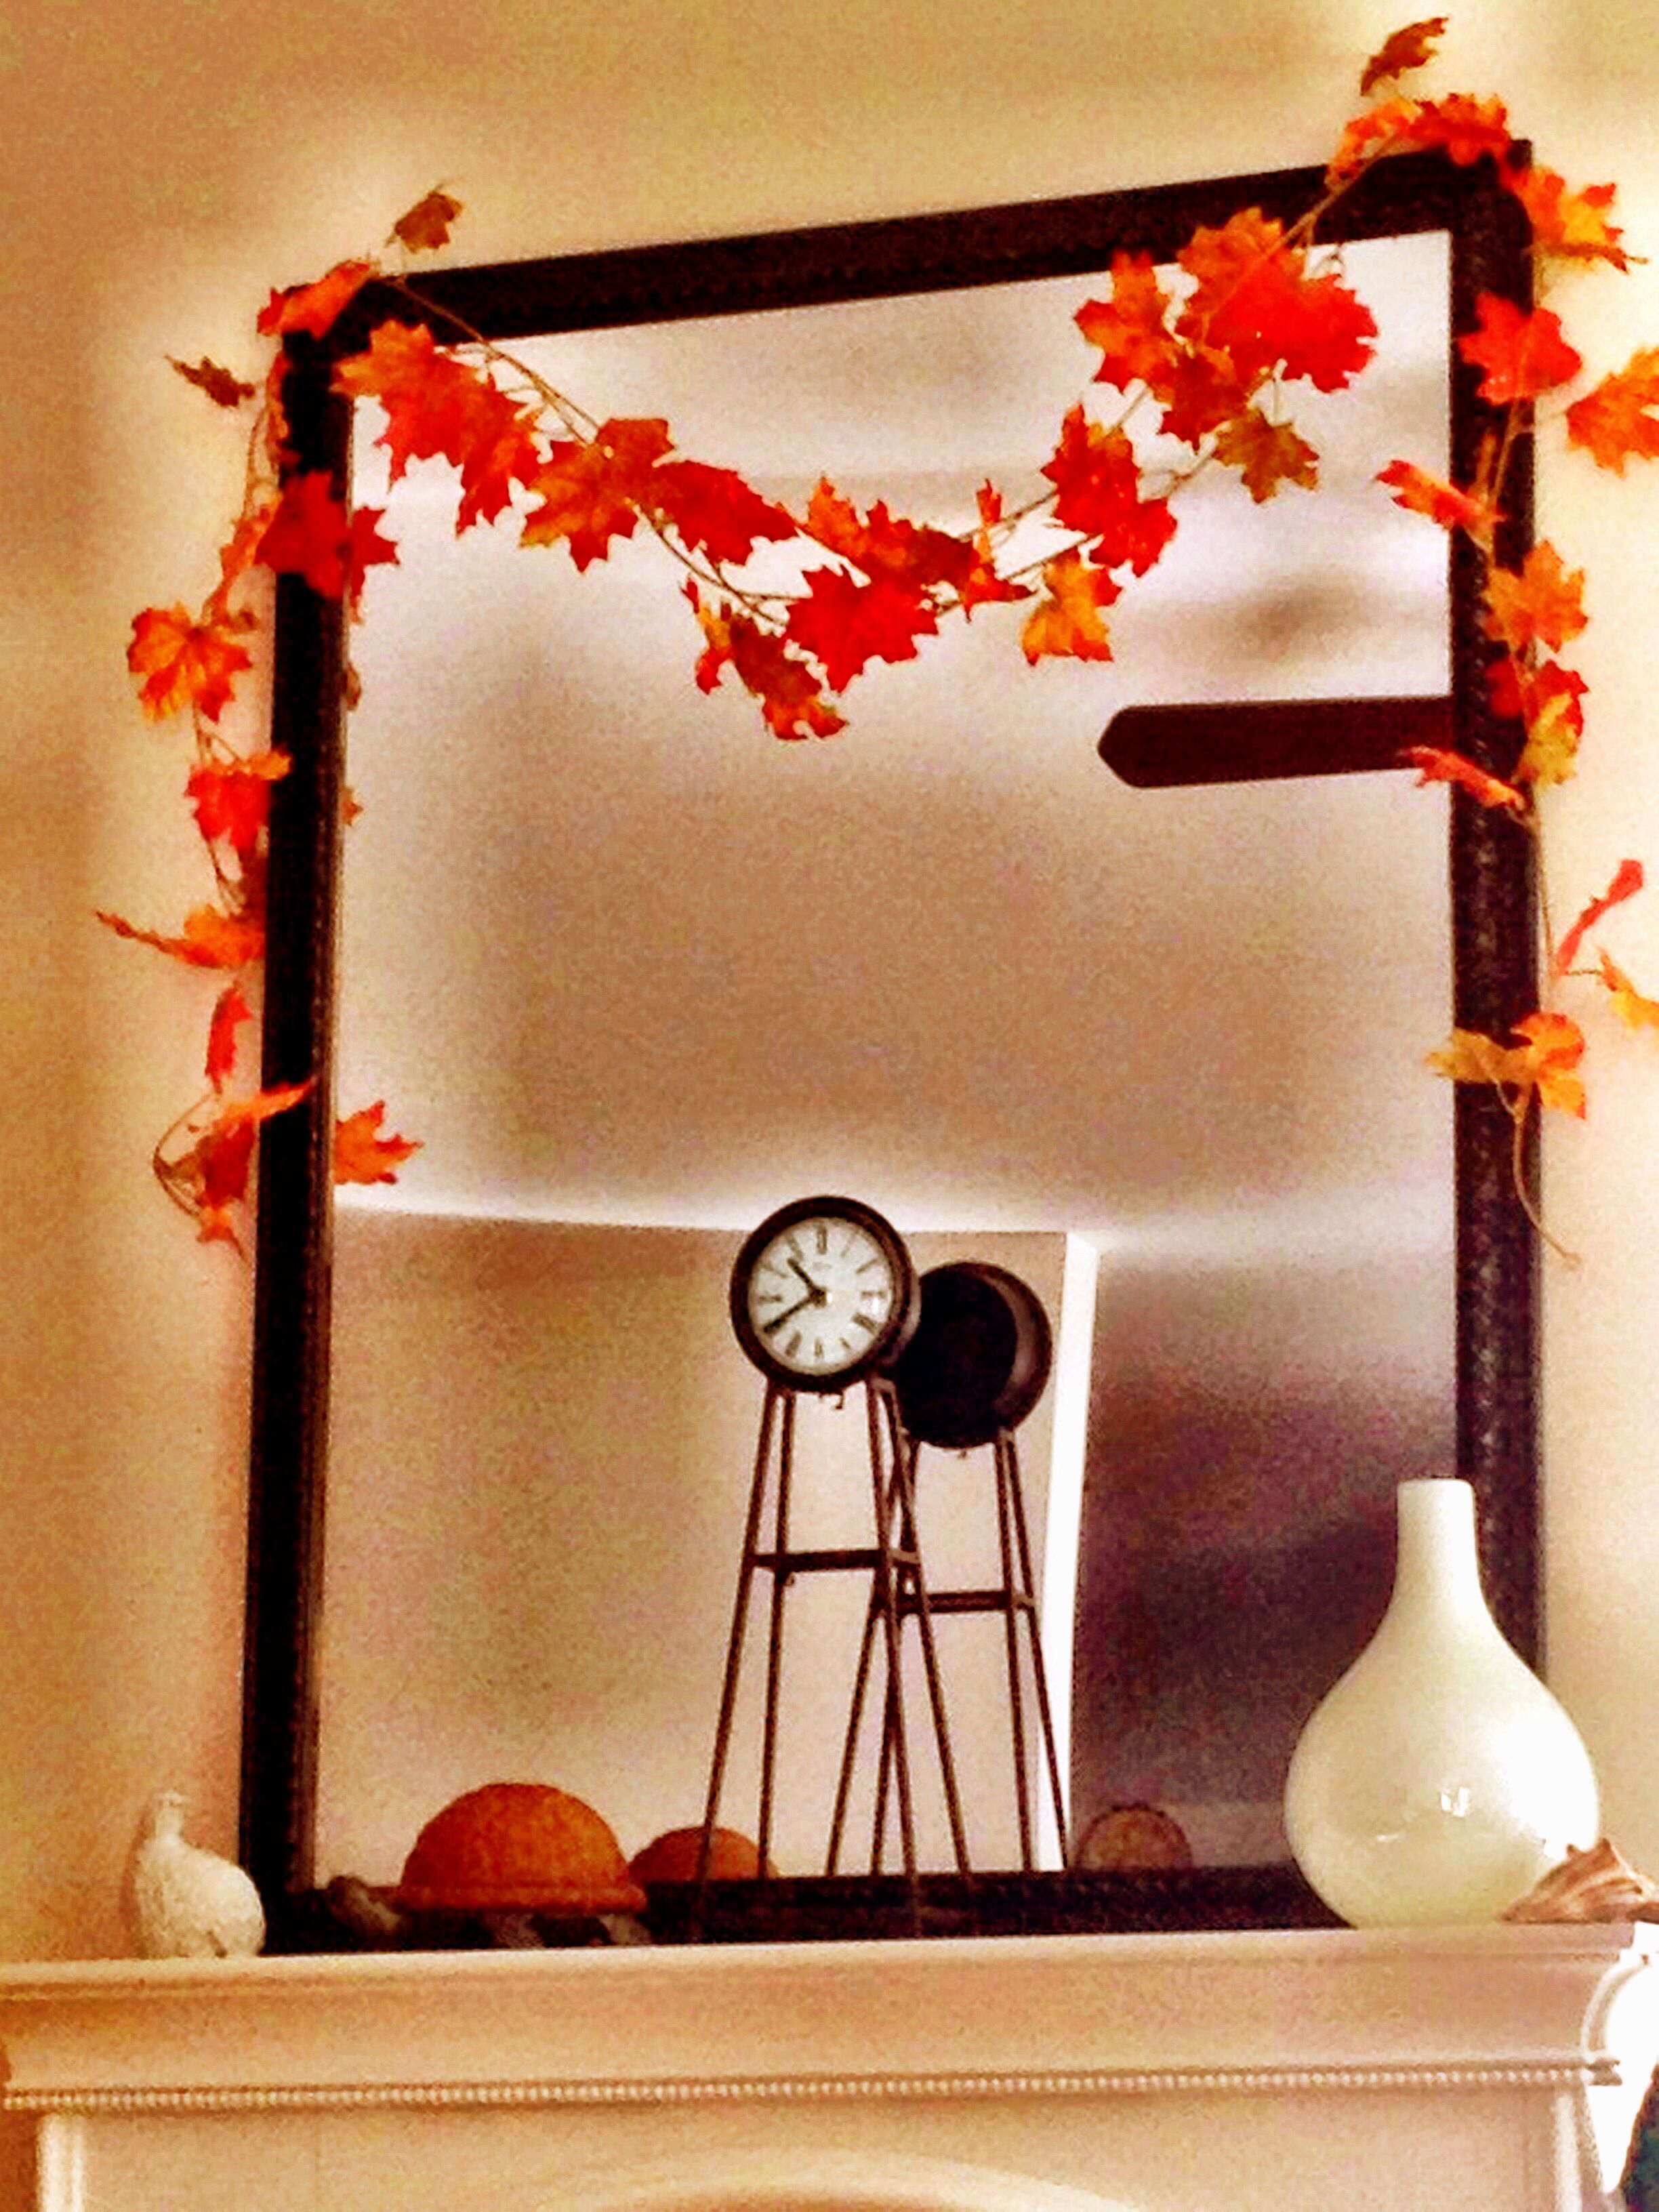 mirror and vase together from salvation army 5 00 thrift scores rh pinterest com